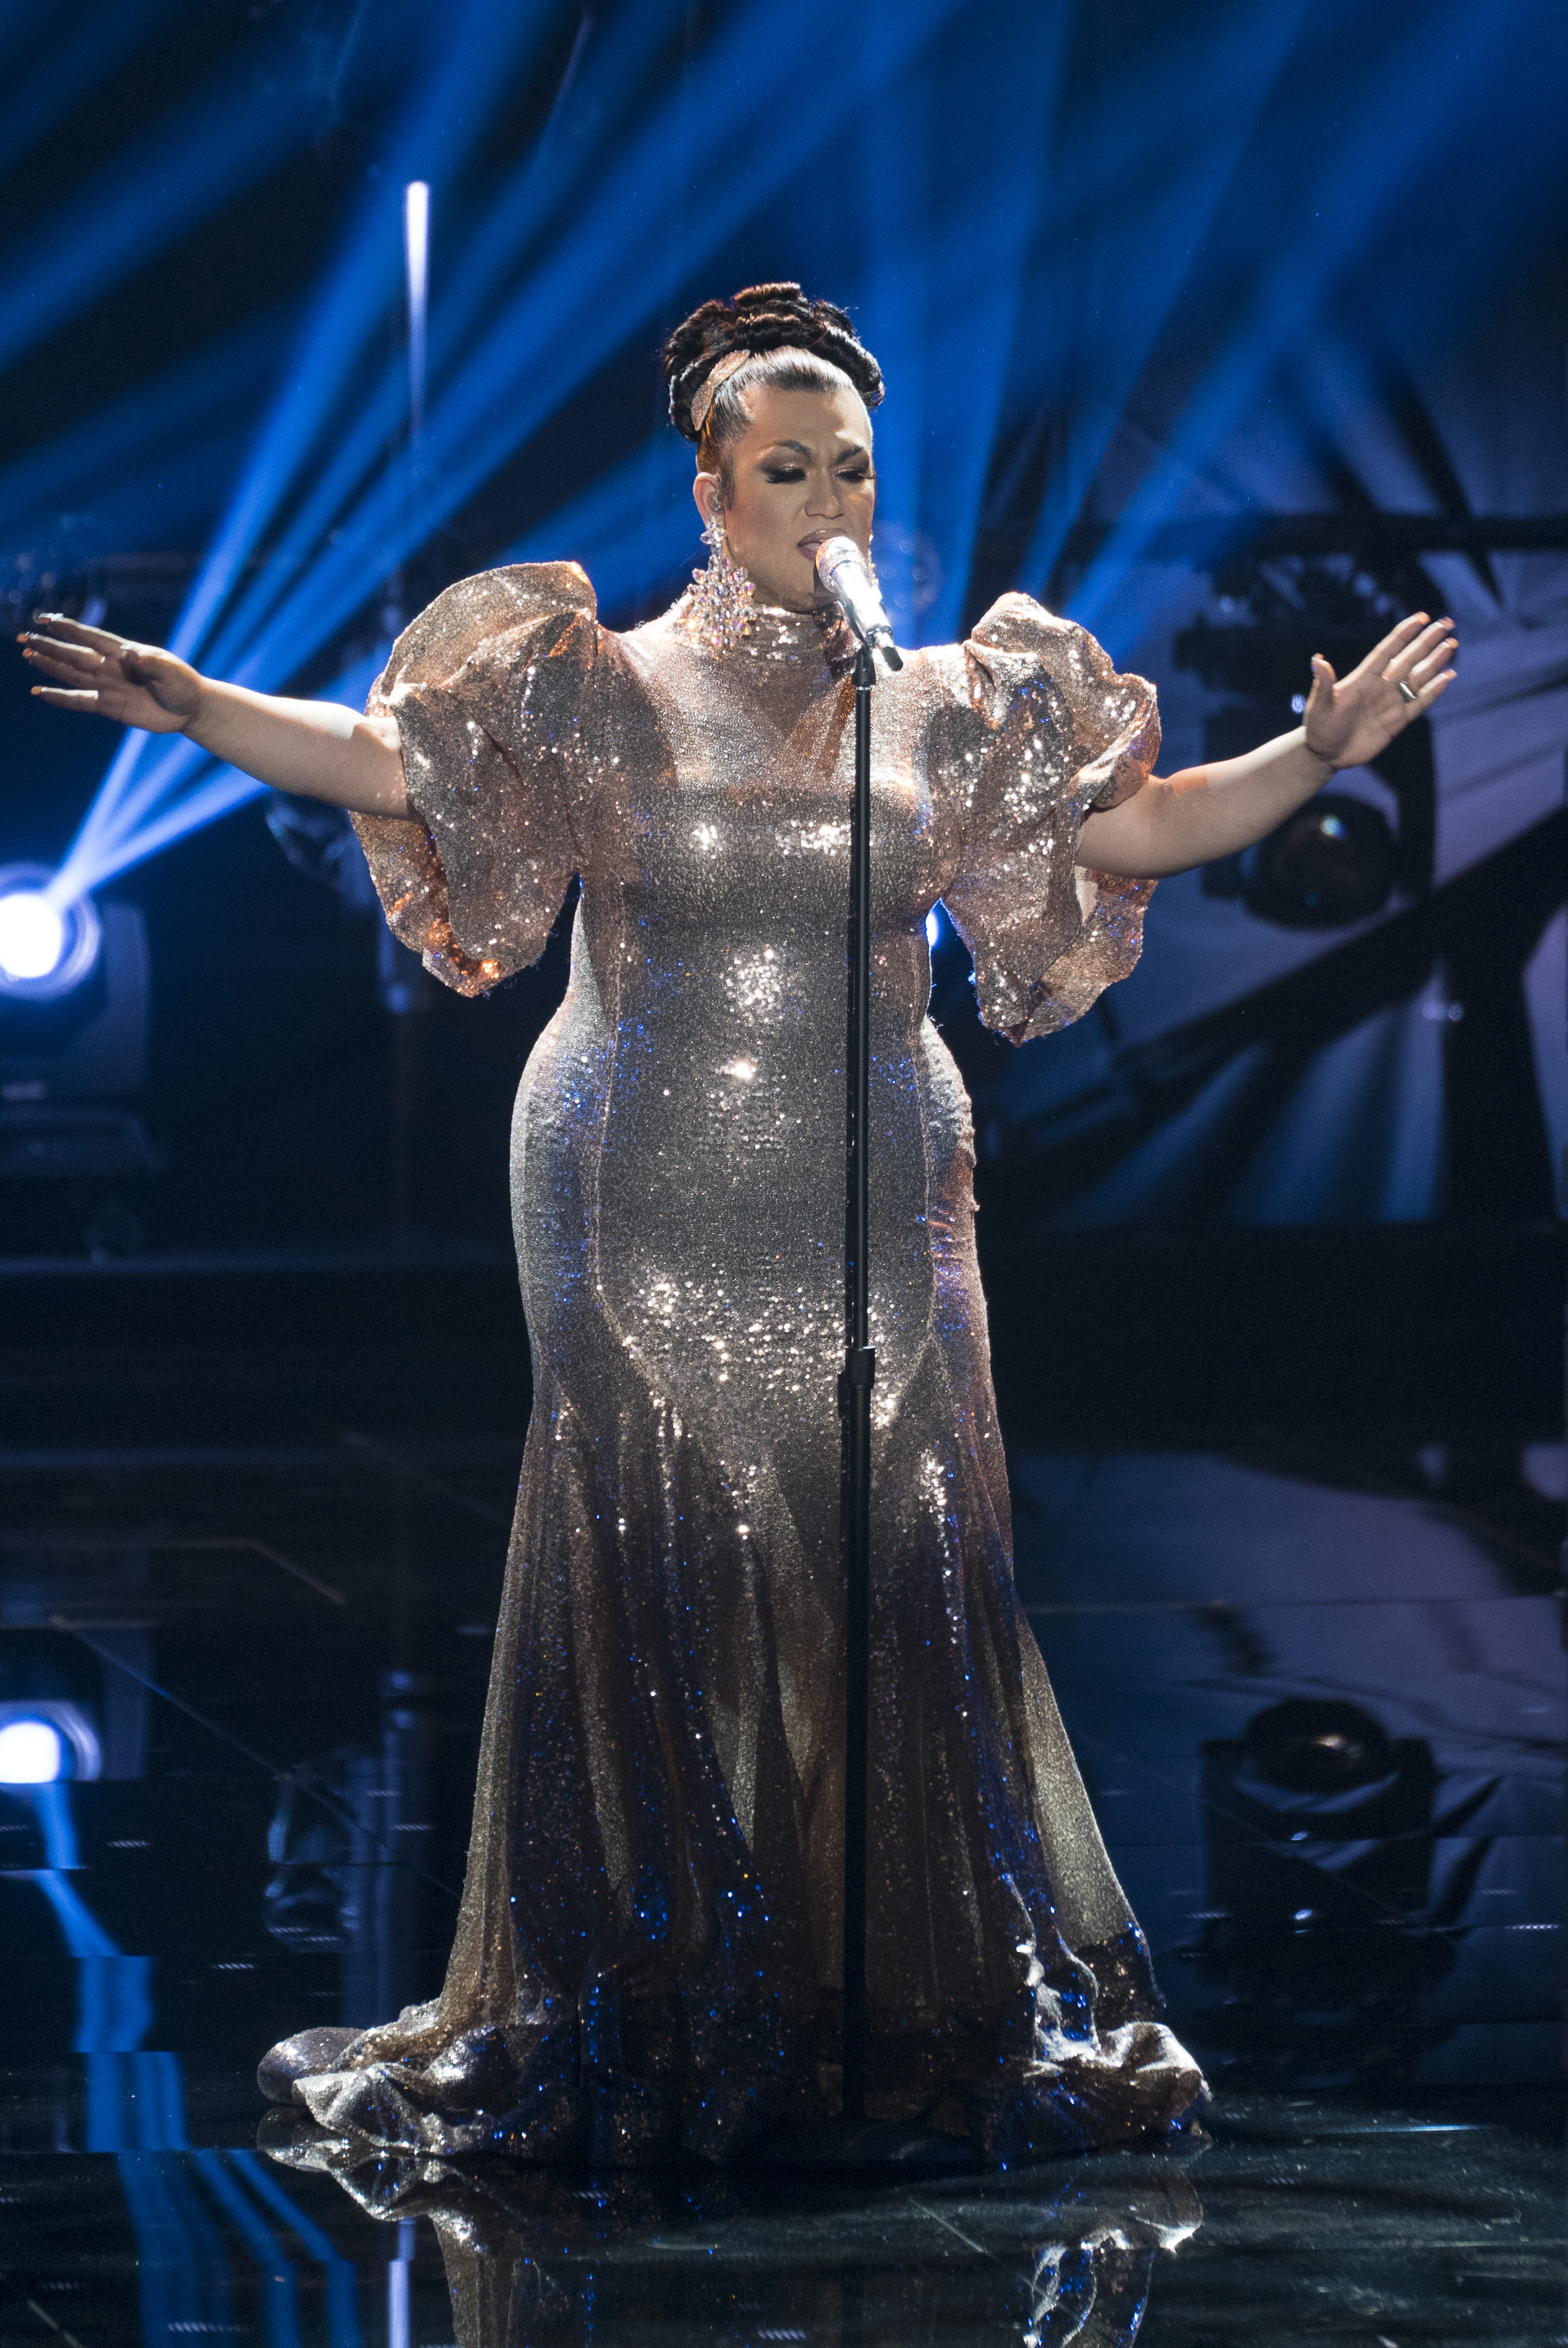 Ada-Vox-Becomes-First-Drag-Queen-To-Make-Top-10-On-American-Idol